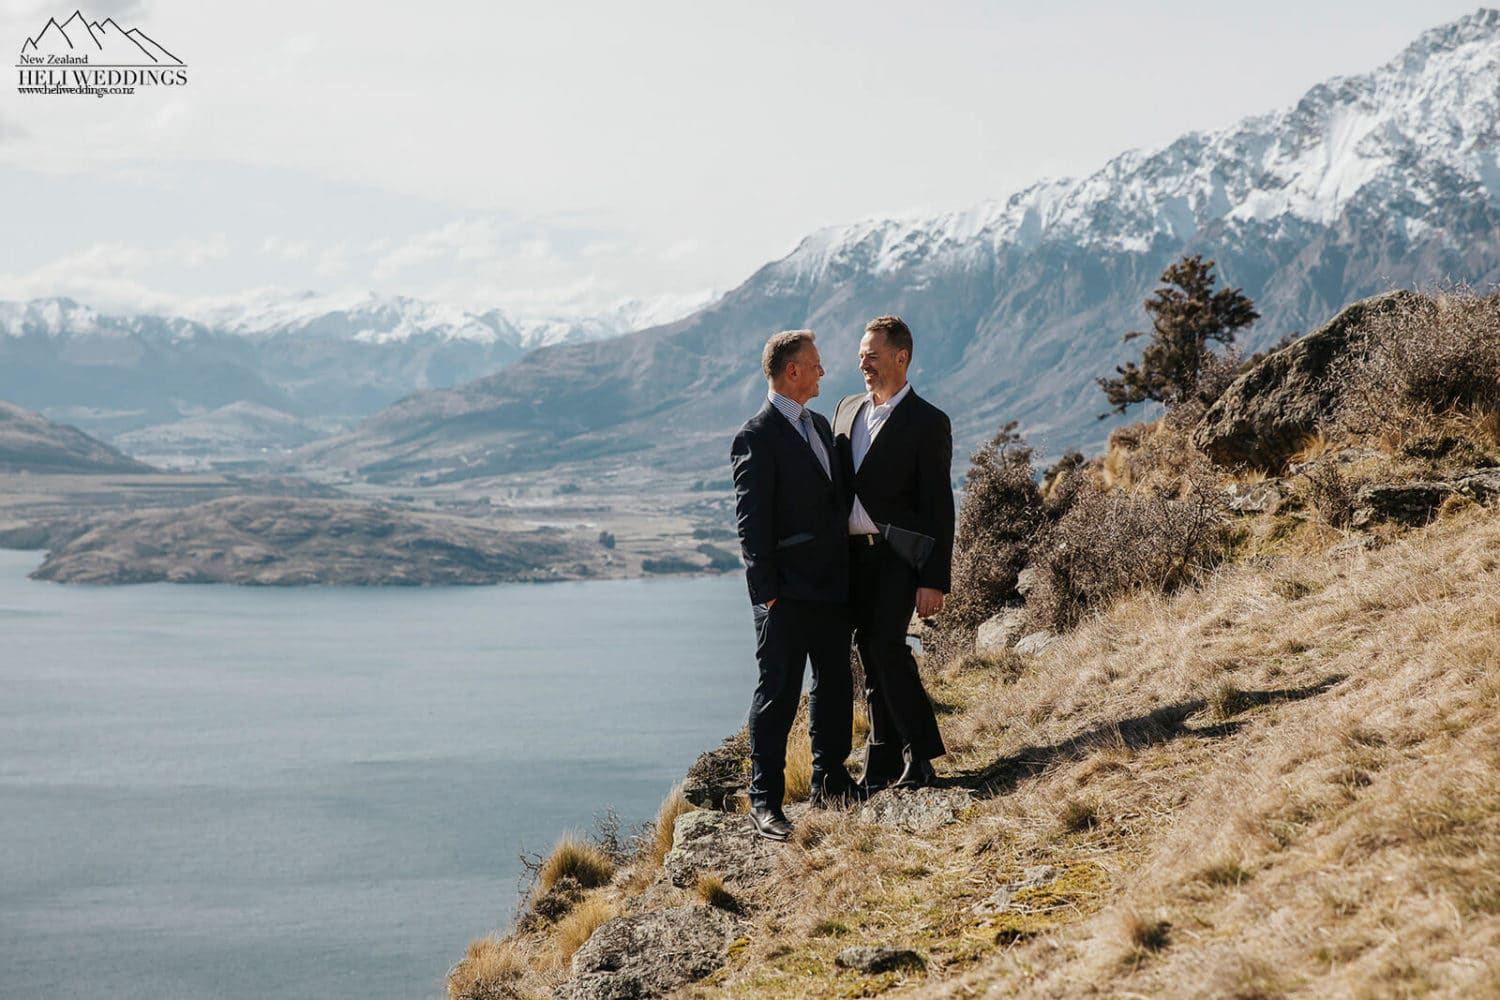 Same sex wedding in Queenstown